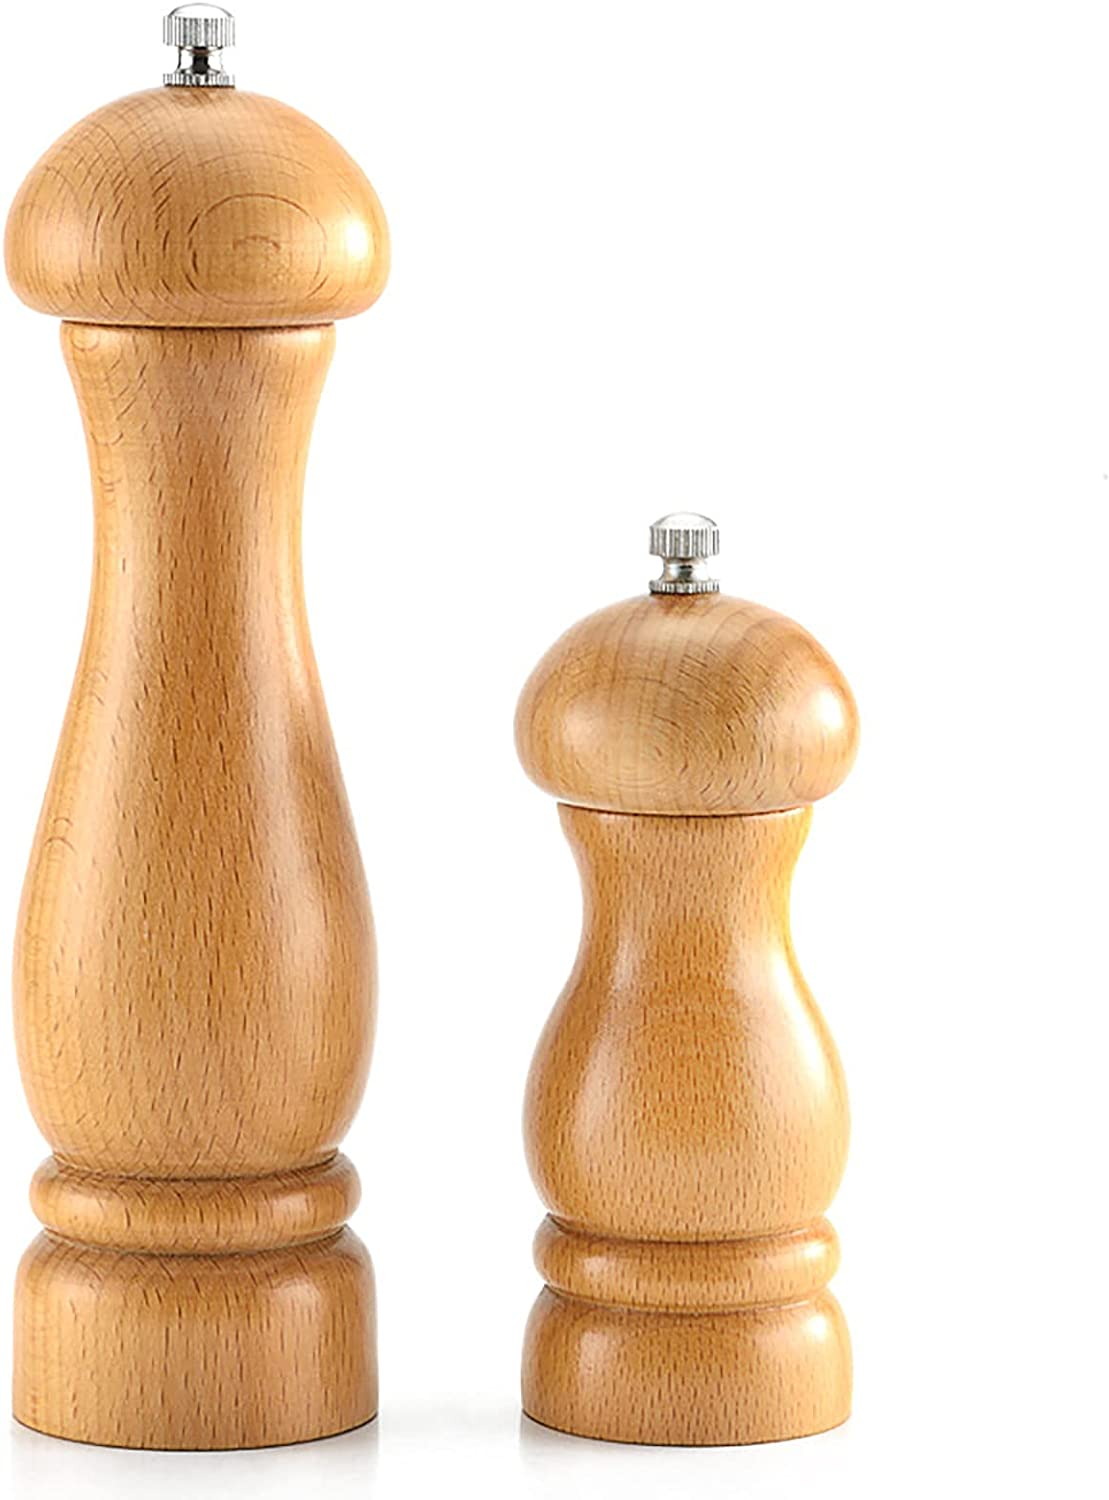 FHTD 2Pcs Wooden Salt and Set Manual Mill Adjustable Pepper Now free shipping Los Angeles Mall